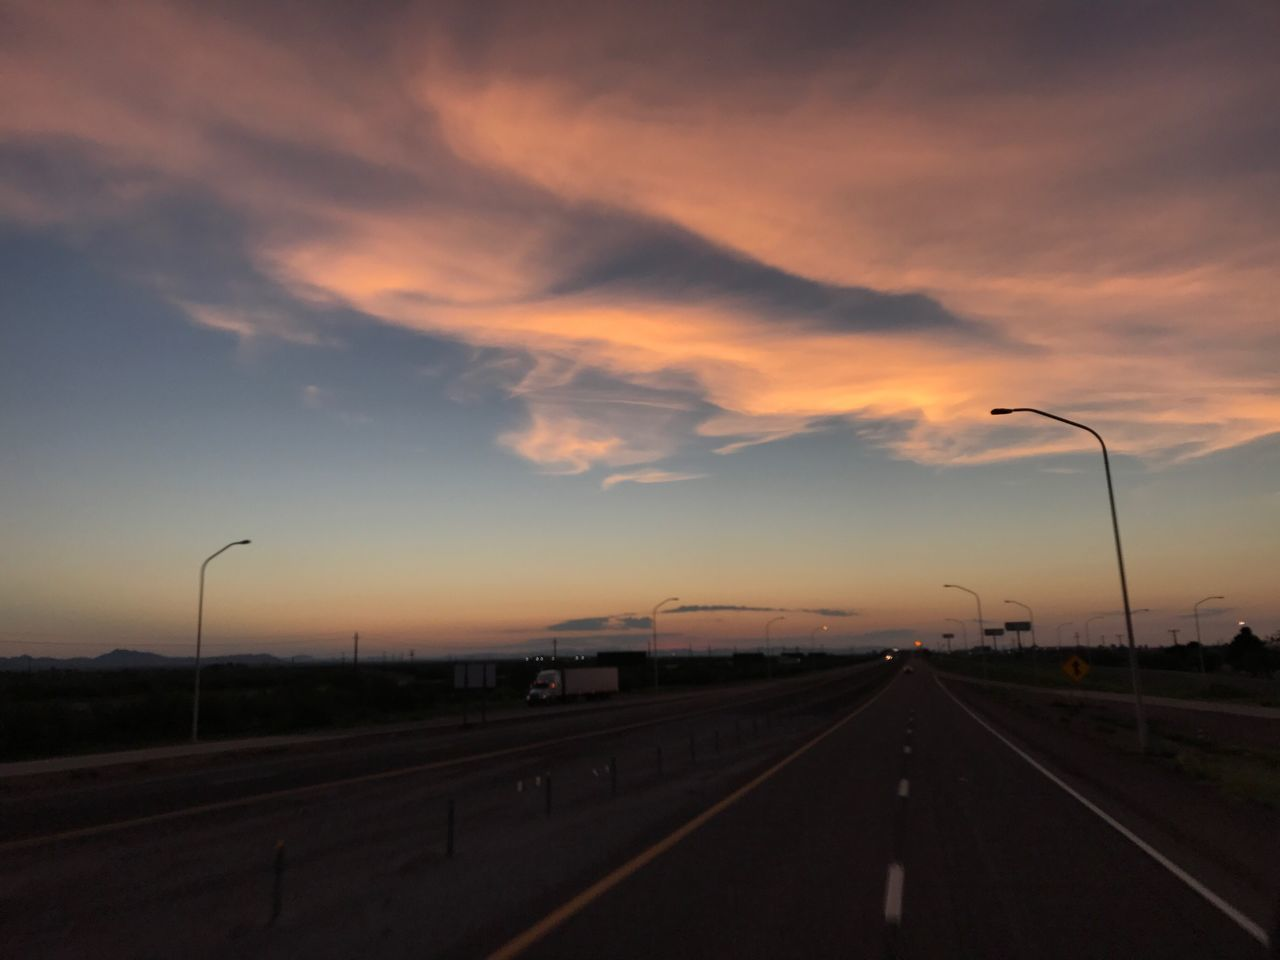 road, transportation, the way forward, sunset, diminishing perspective, street light, highway, sky, no people, cloud - sky, outdoors, scenics, nature, beauty in nature, day